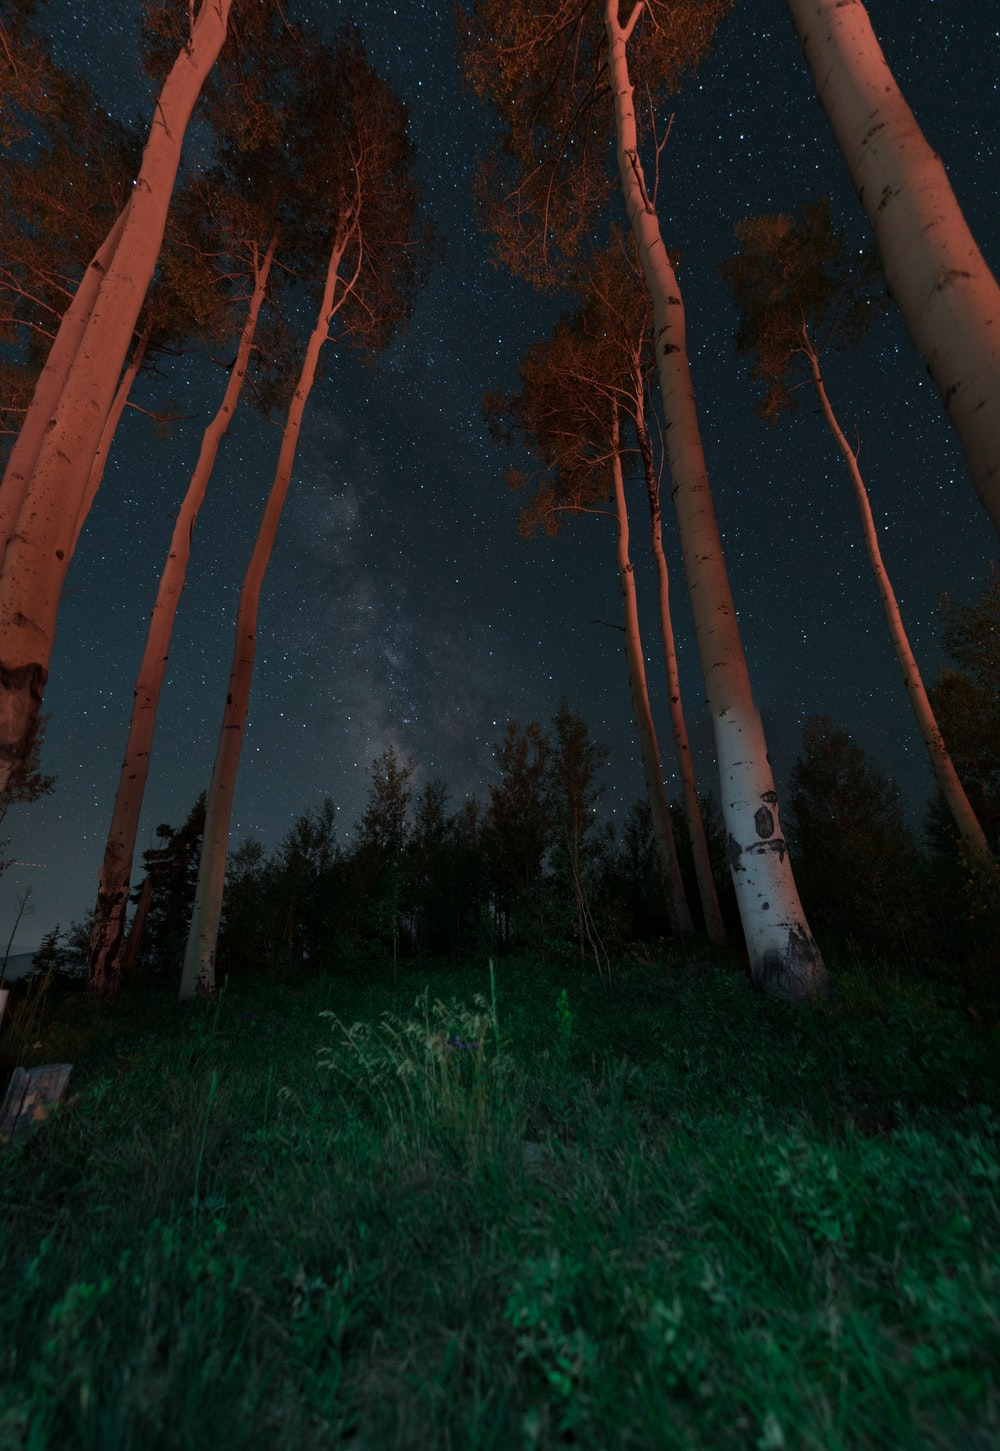 landscape photography of trees